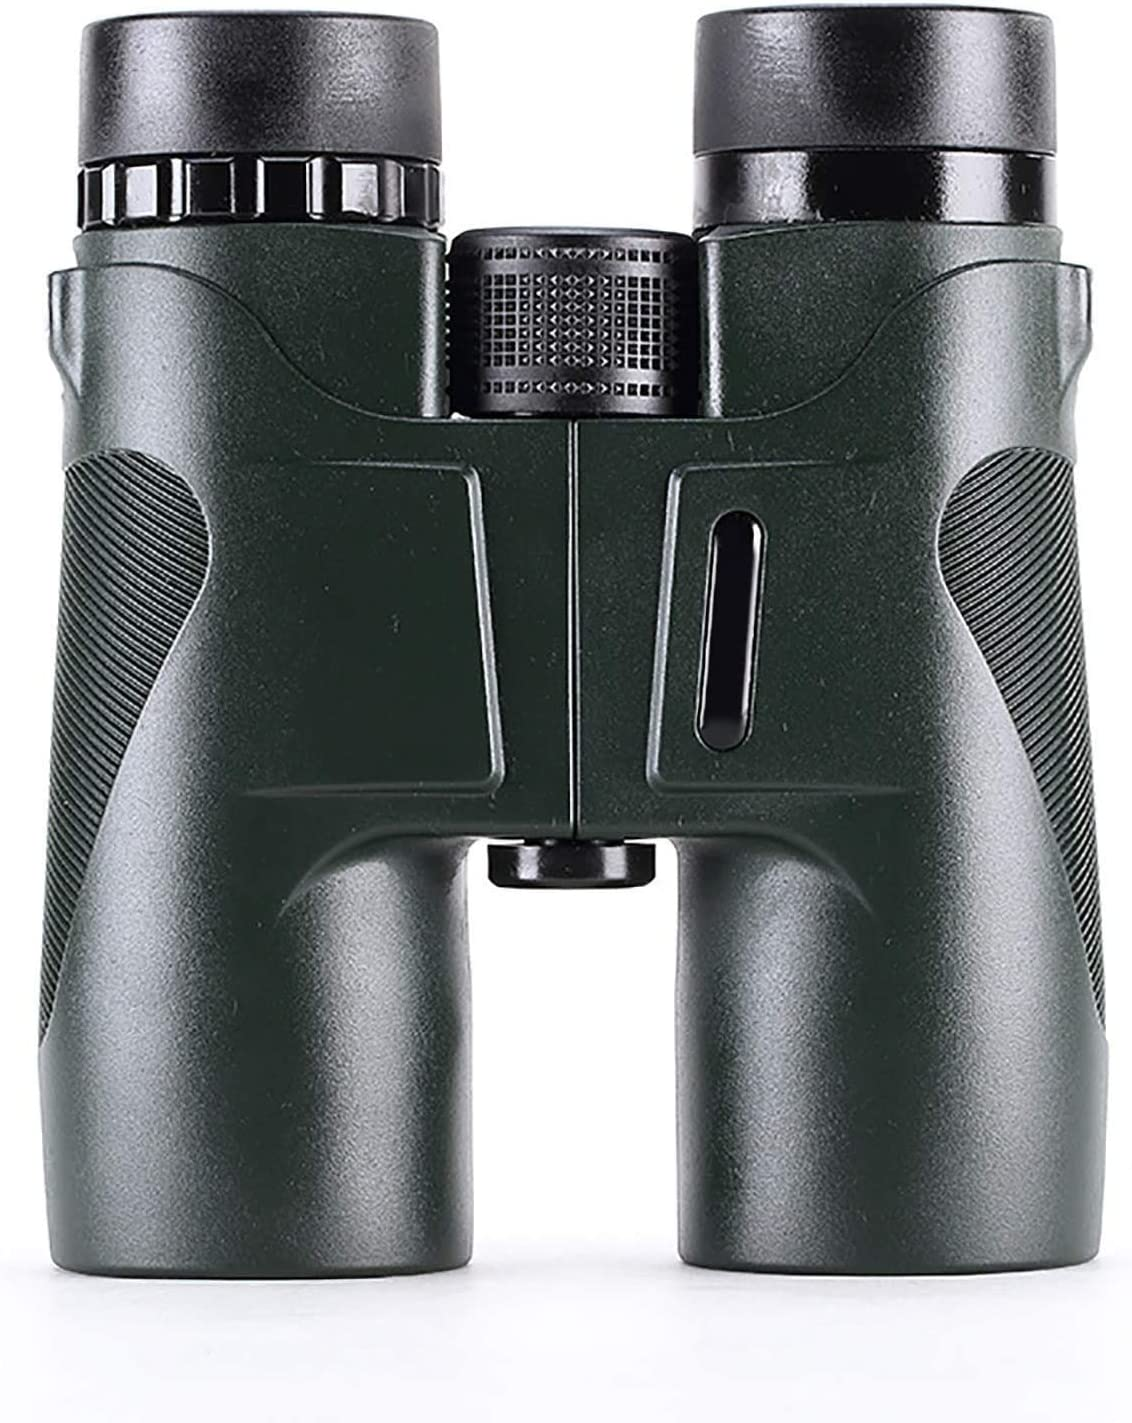 FMOGG Binoculars Max 58% OFF for Omaha Mall Adults Hunting Large Telesco Eyepiece Gifts